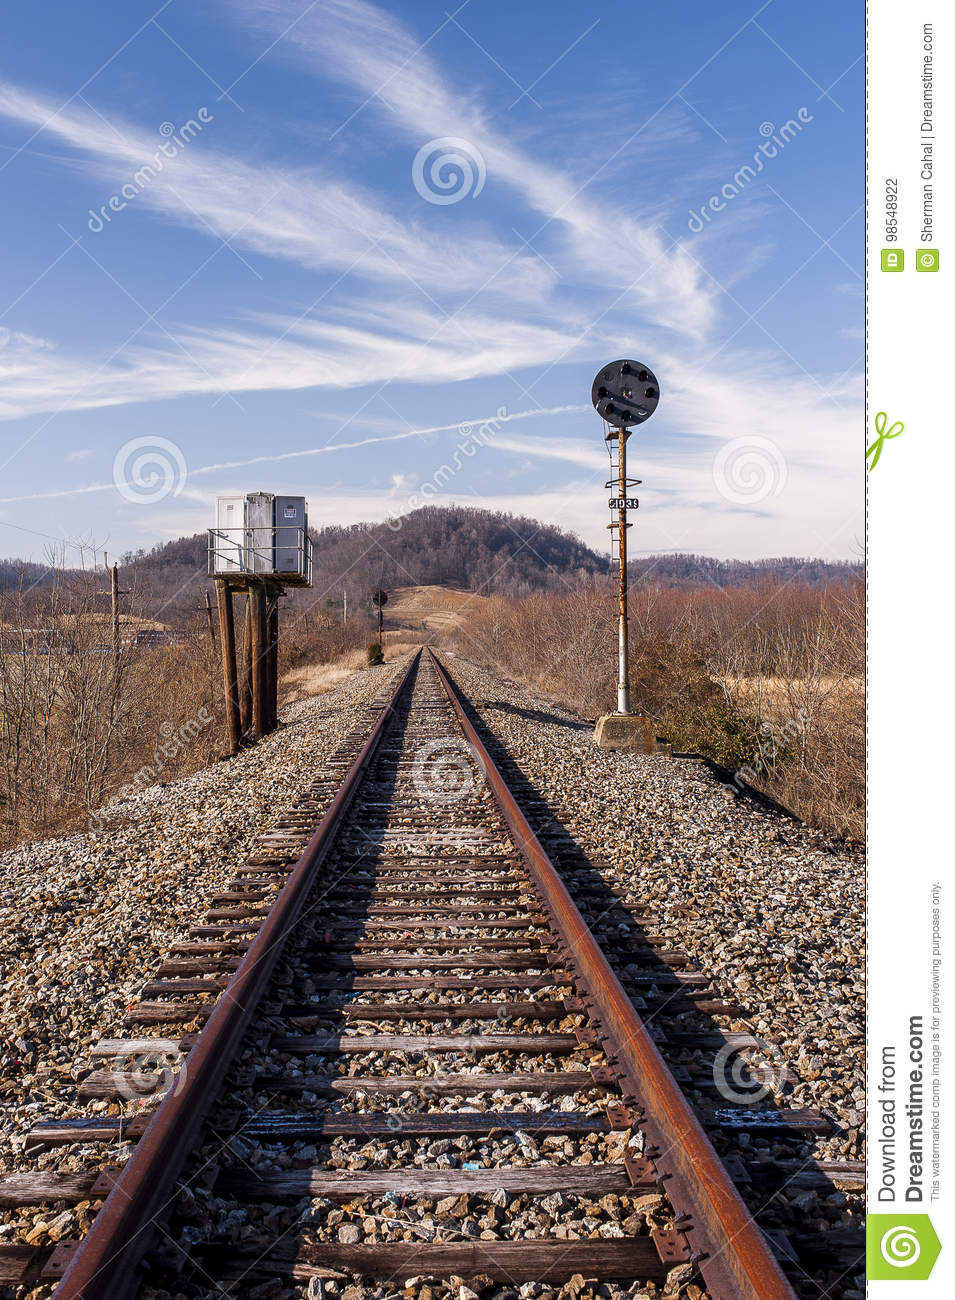 Abandoned Railroad Signal - Track View Stock Photo - Image